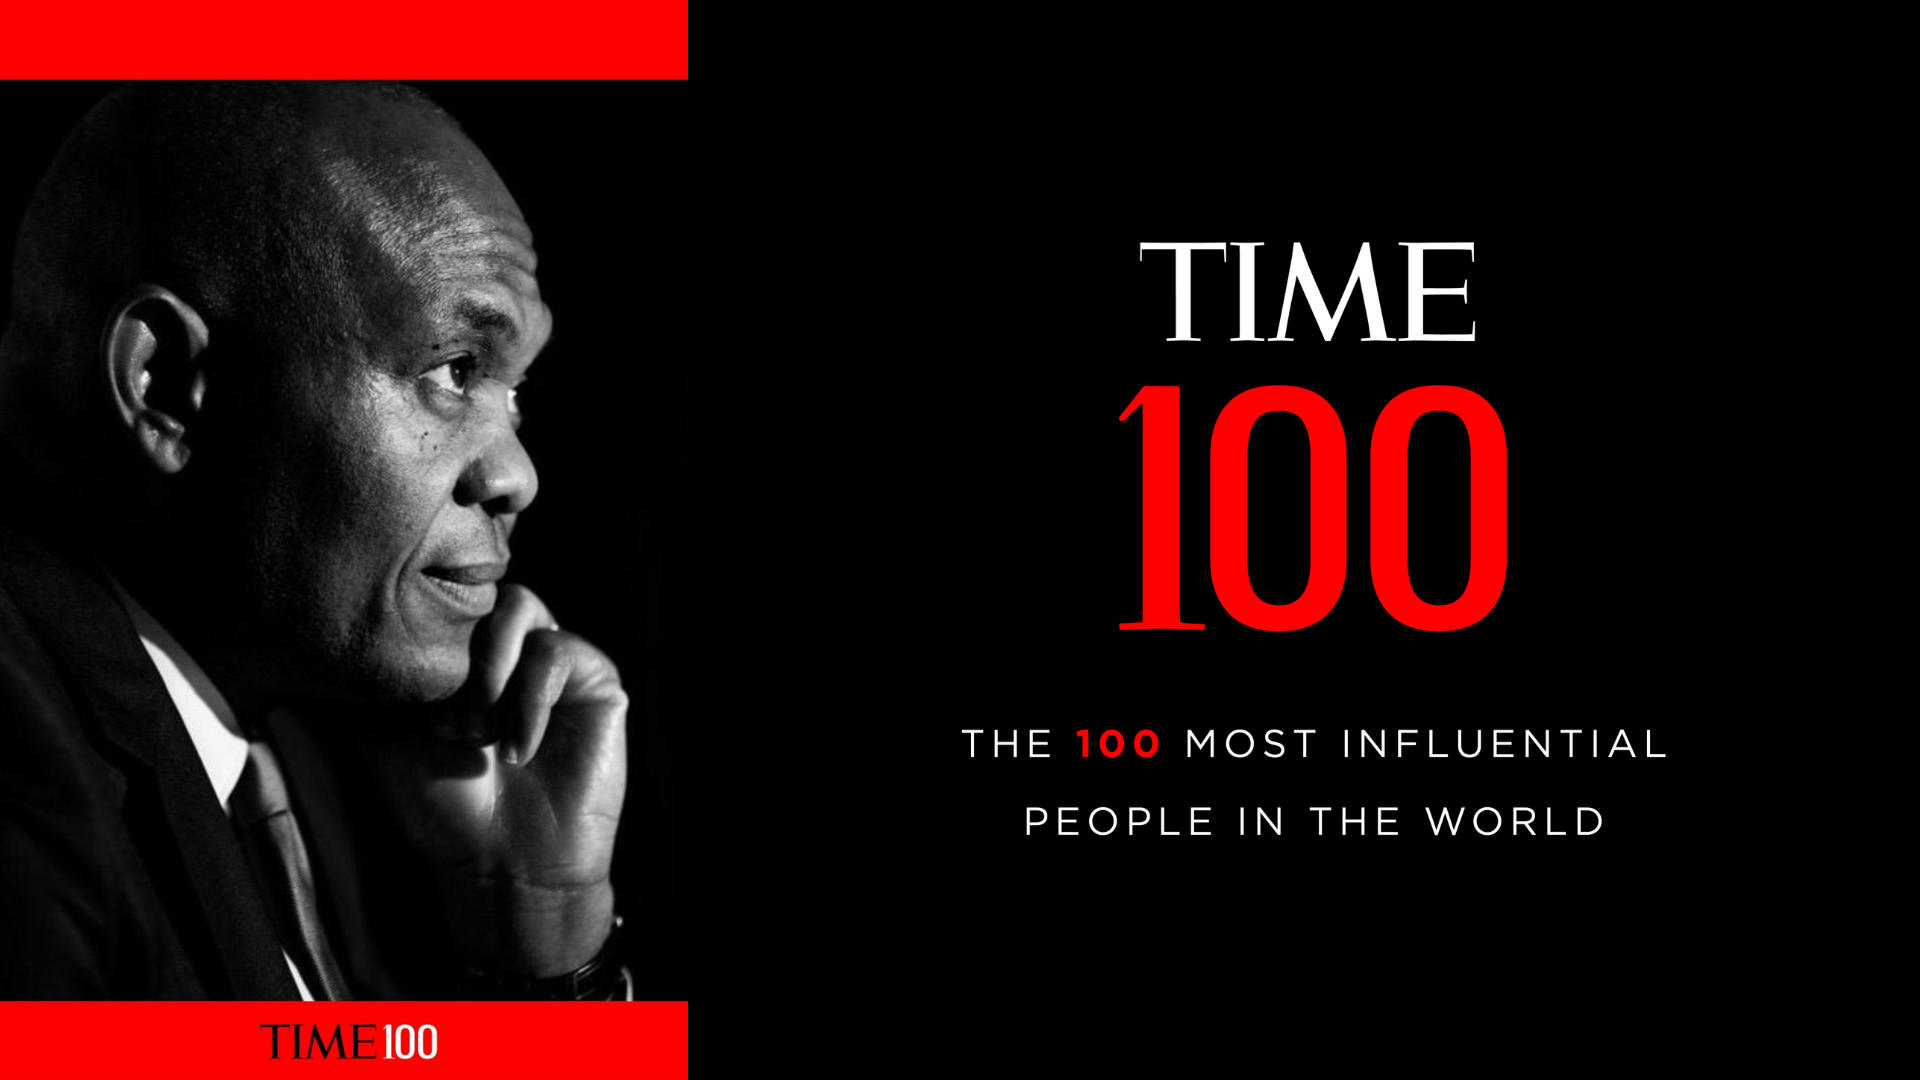 President Muhammadu Buhari lauds Tony O. Elumelu, on his being named among the Time100 Most Influential People of 2020